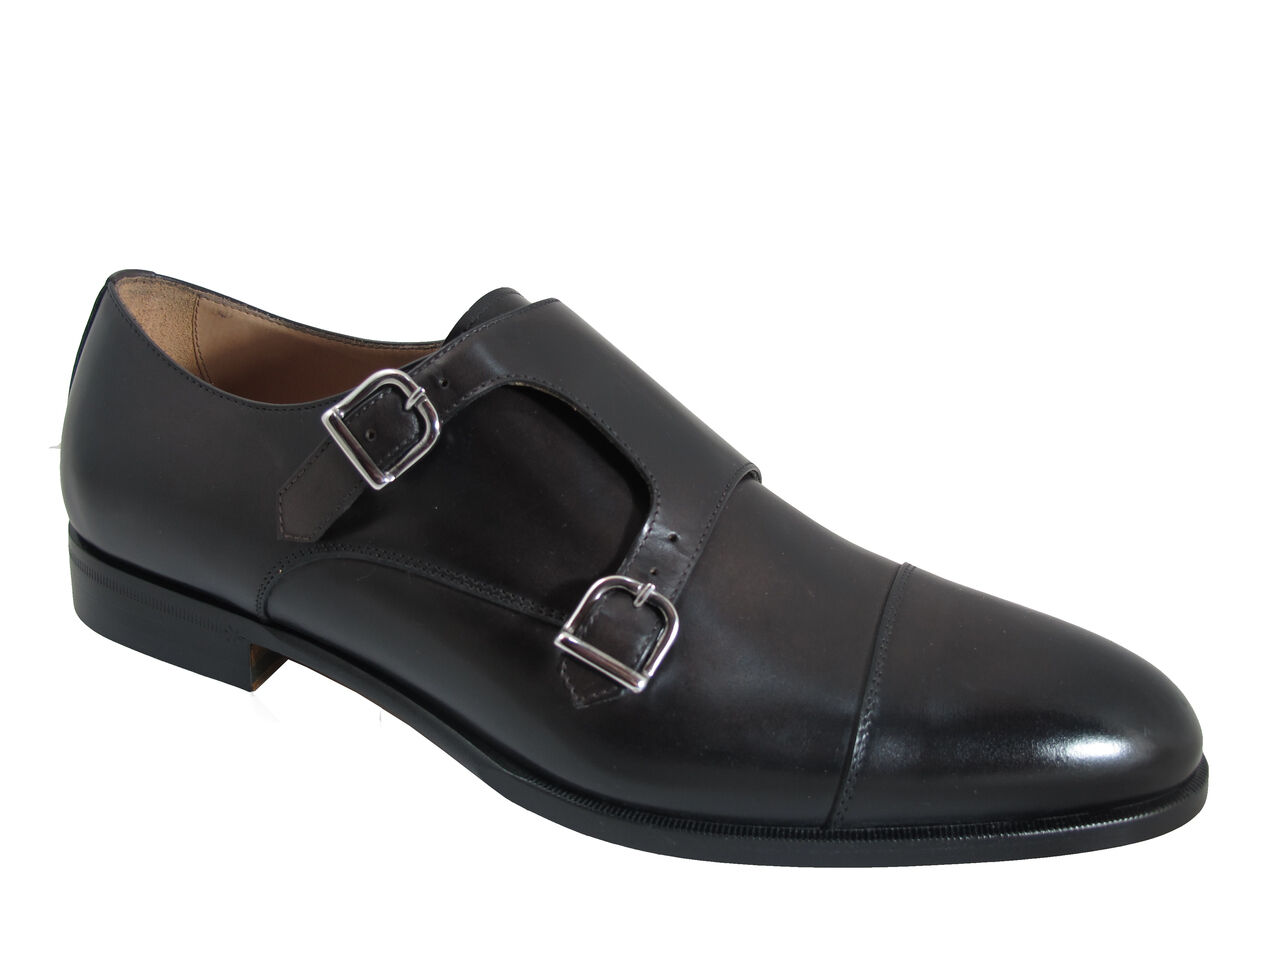 Doucals Men's 41187 Slip On Dressy Italian scarpe With Double Buckles